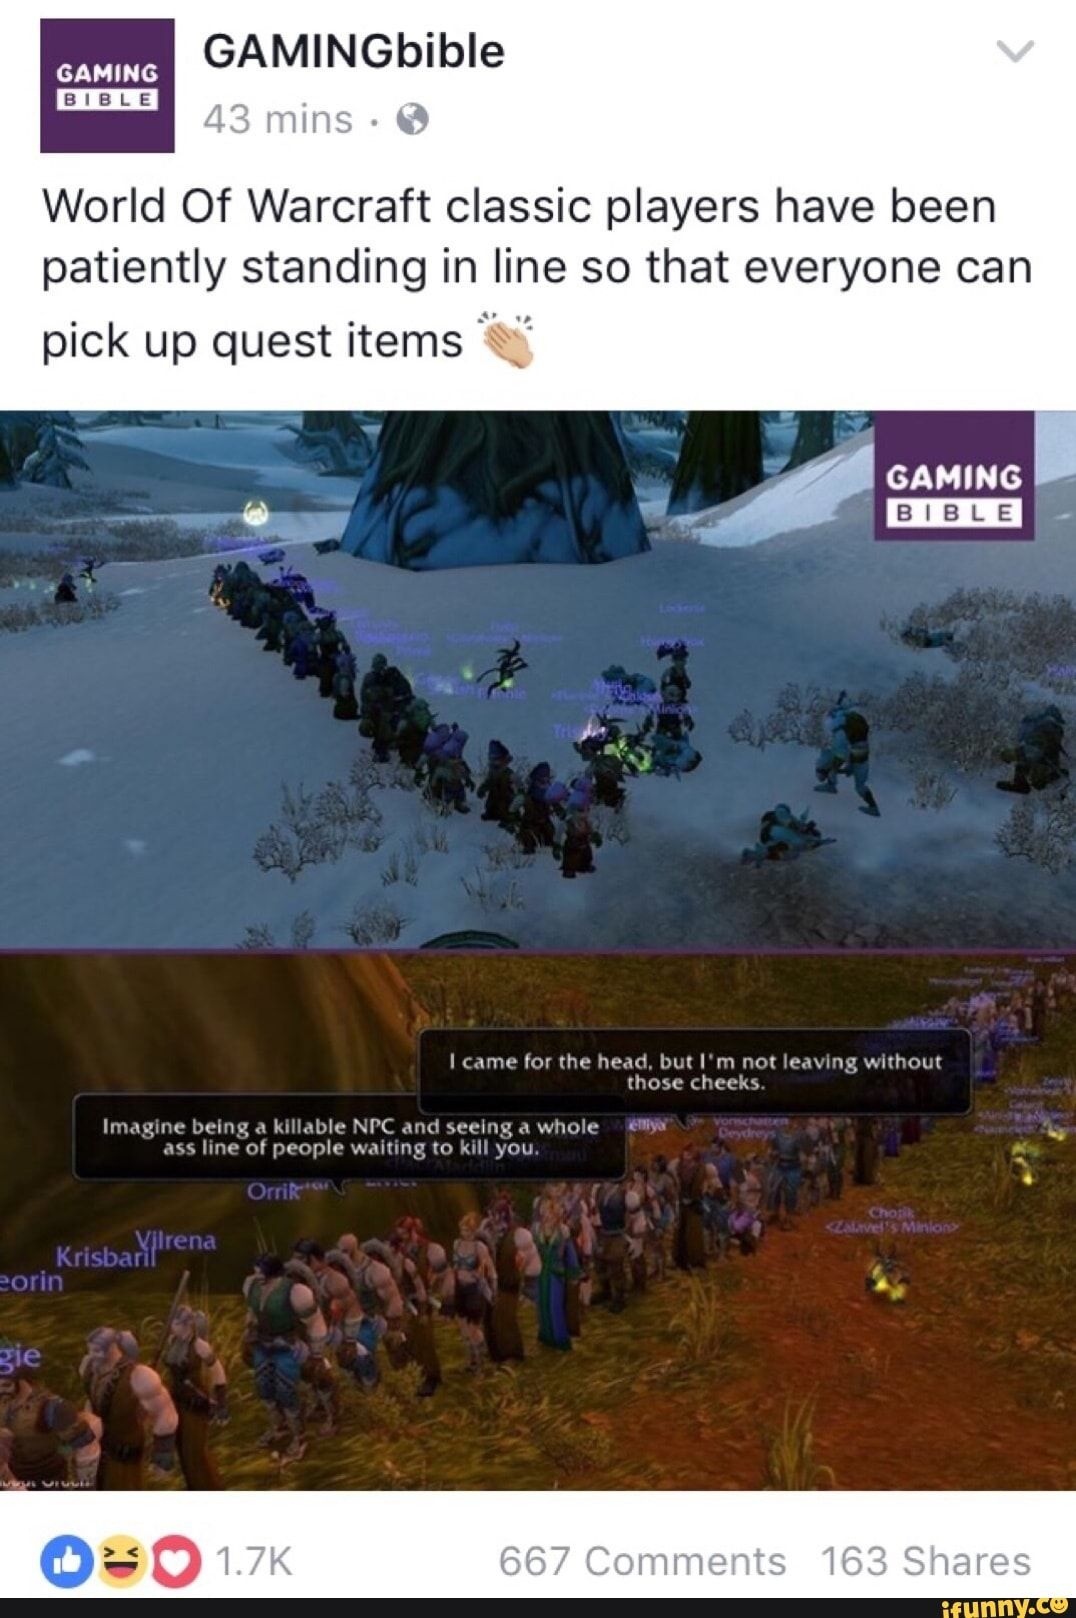 Wow Classic Memes : classic, memes, World, Warcraft, Classic, Players, Patiently, Standing, Everyone, Quest, Items, IFunny, Funny,, Warcraft,